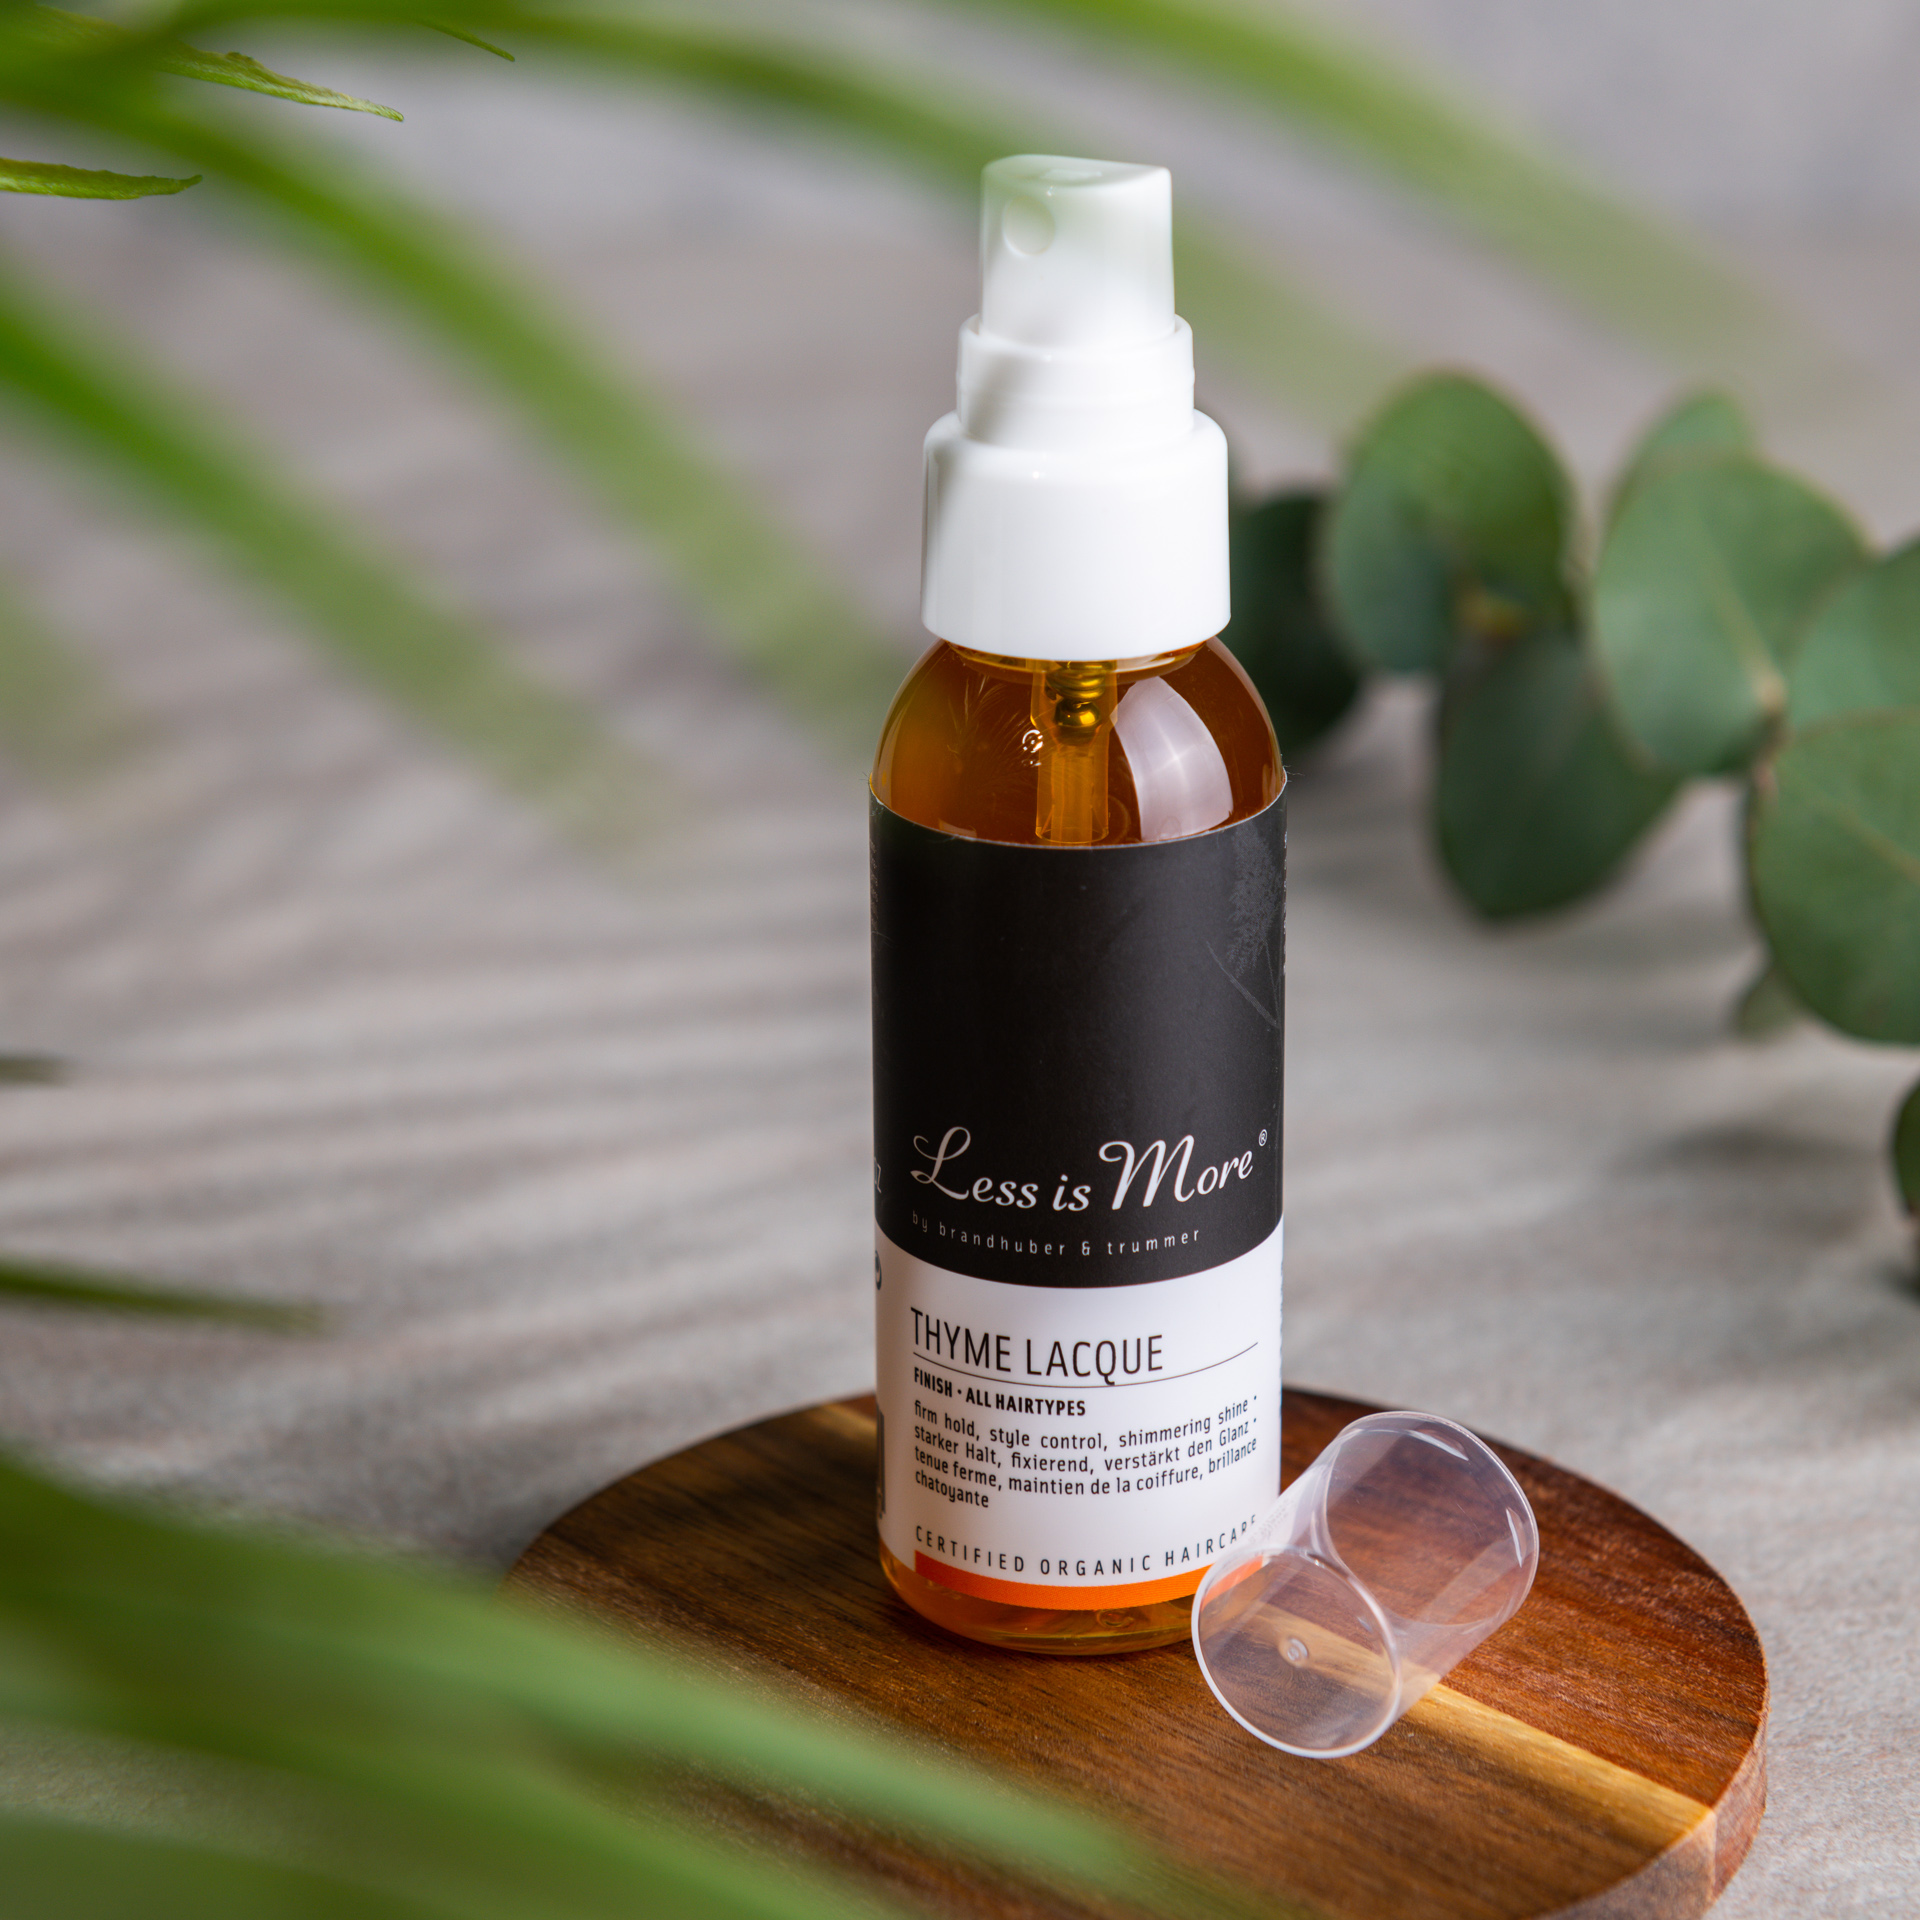 Thyme Lacque Travel Size